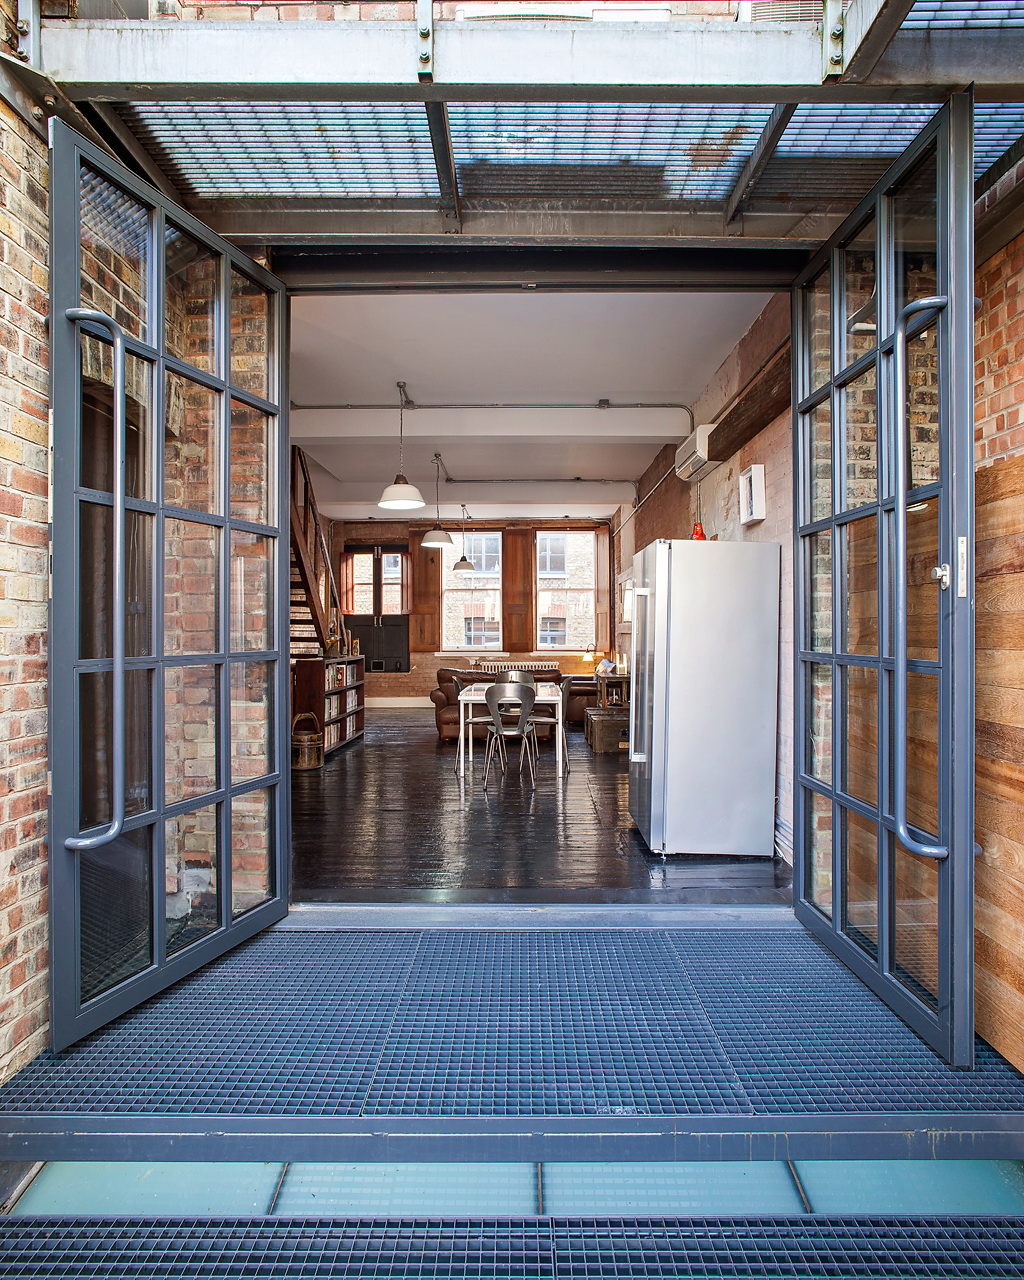 Chris-Dyson-Architects-Shoreditch-Warehouse-Conversion-1